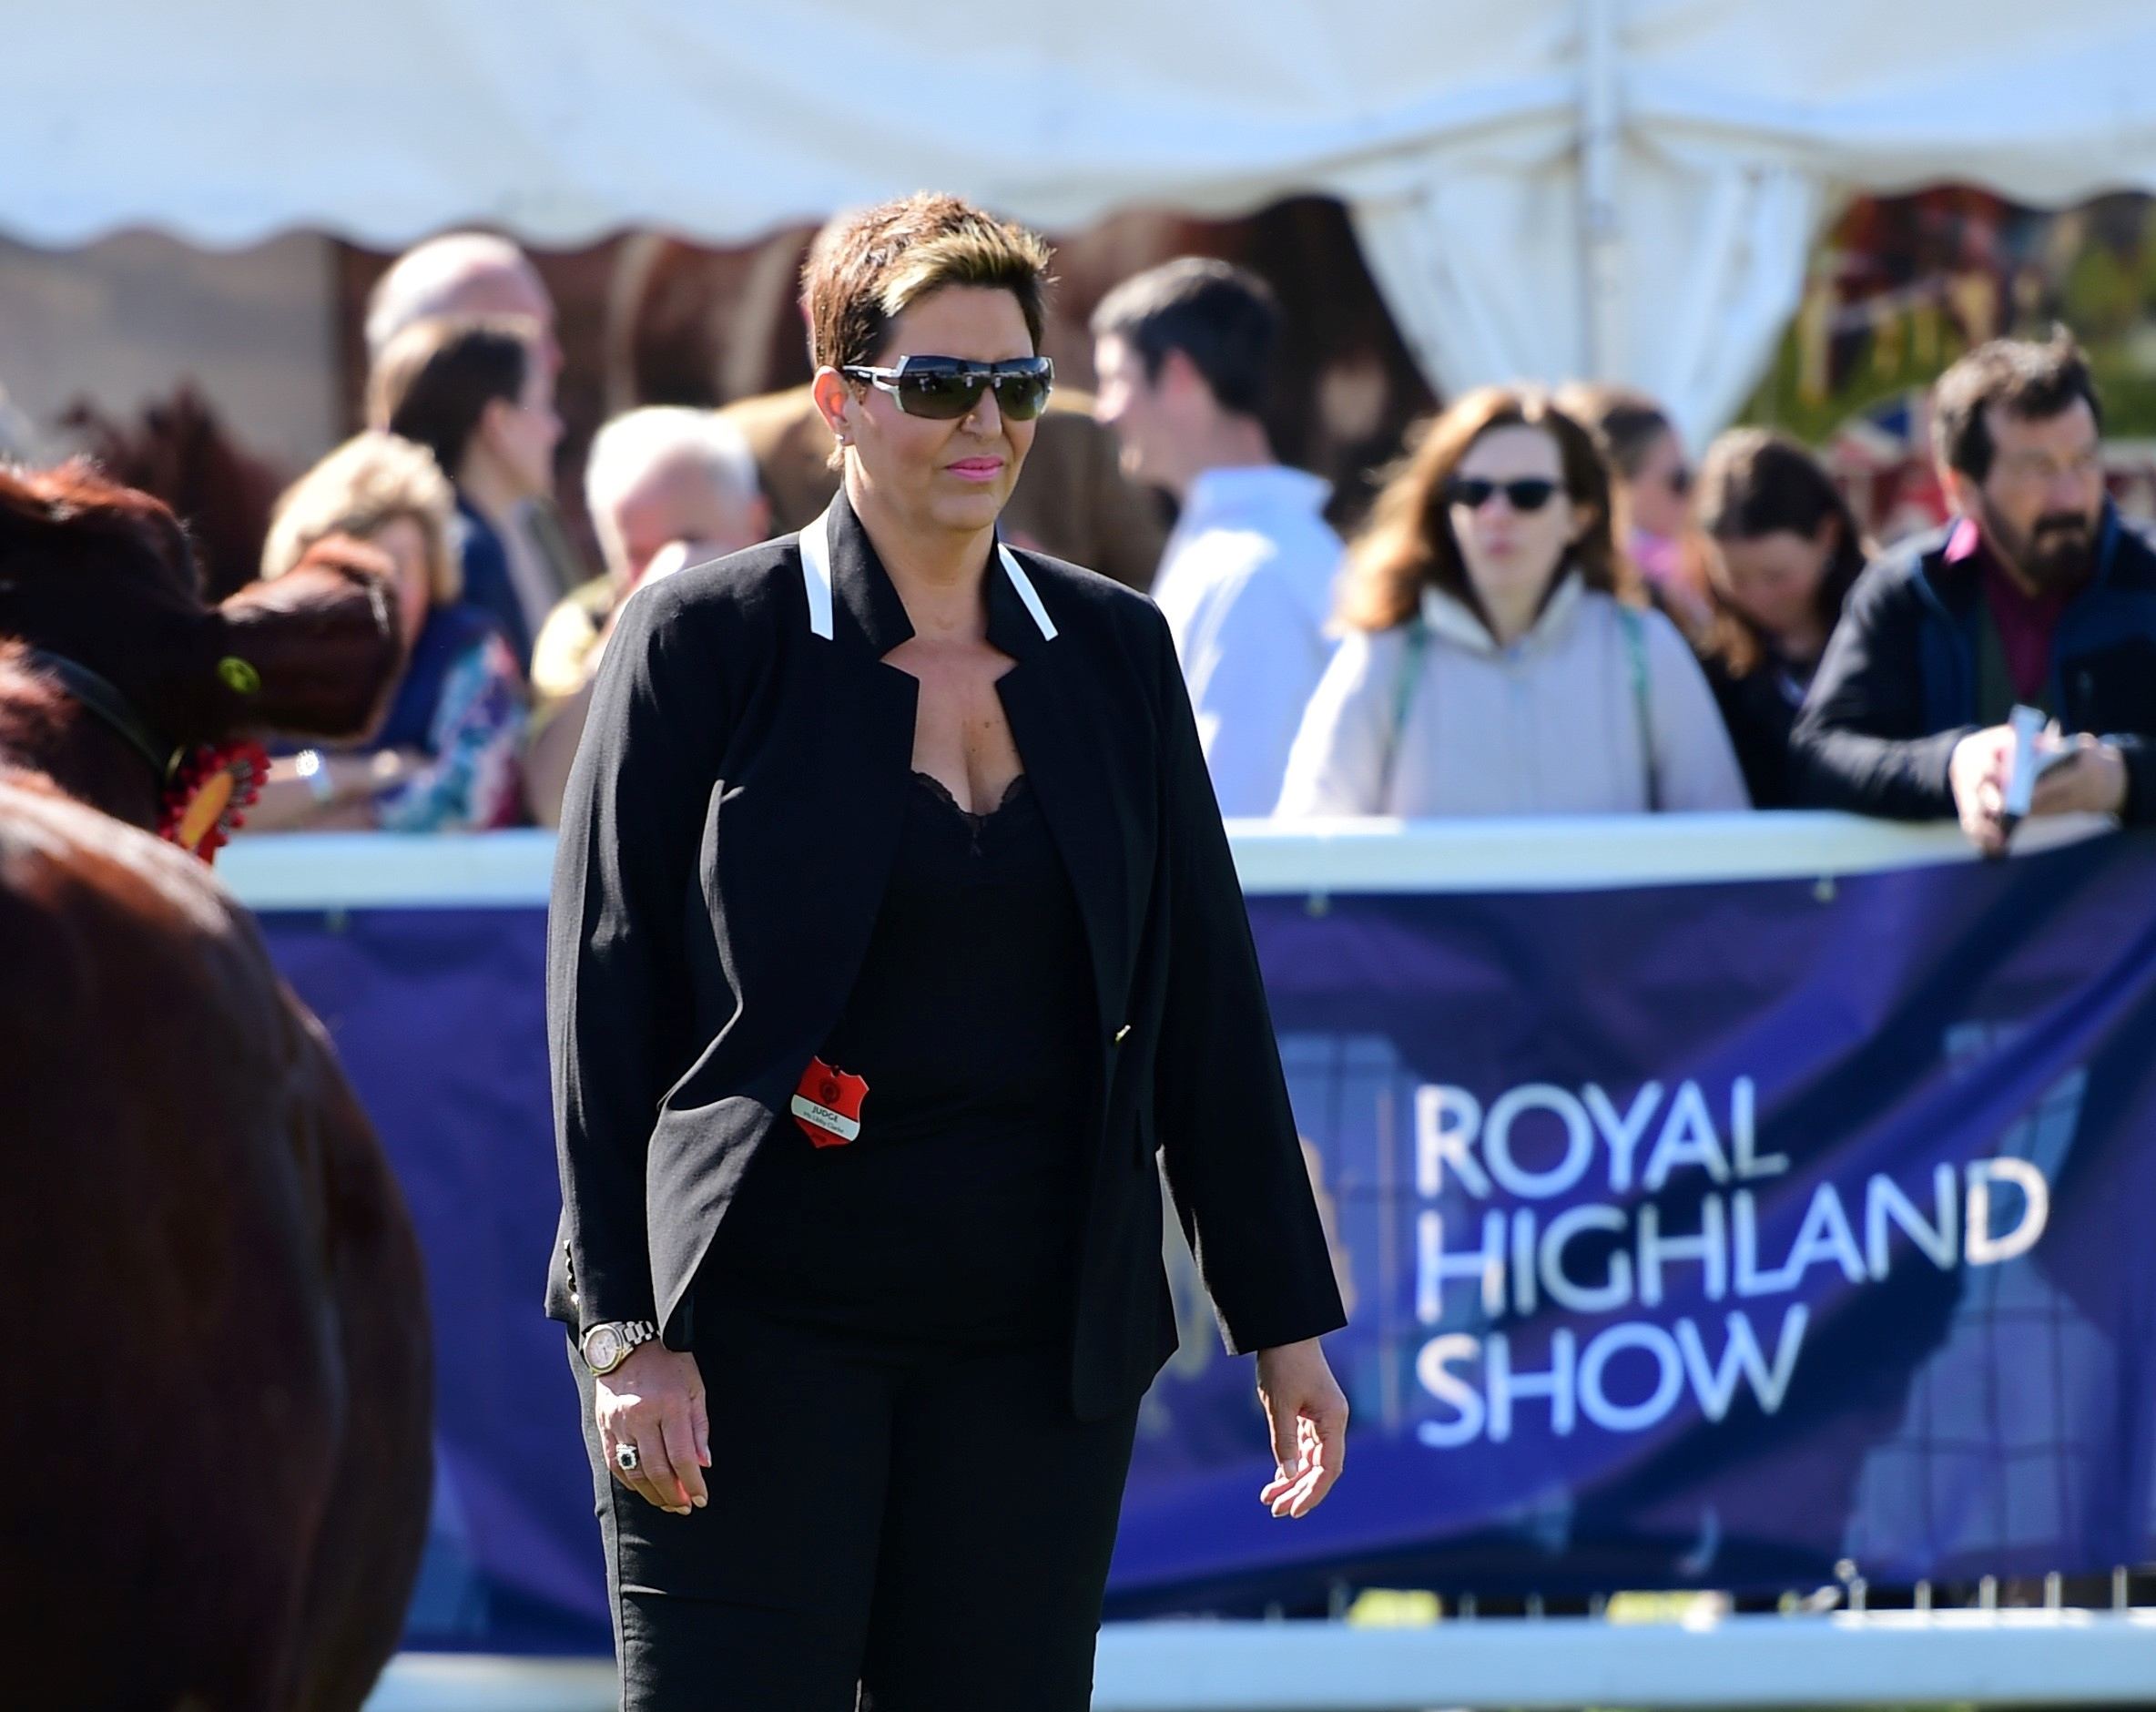 Libby Clarke judging at the Royal Highland Show